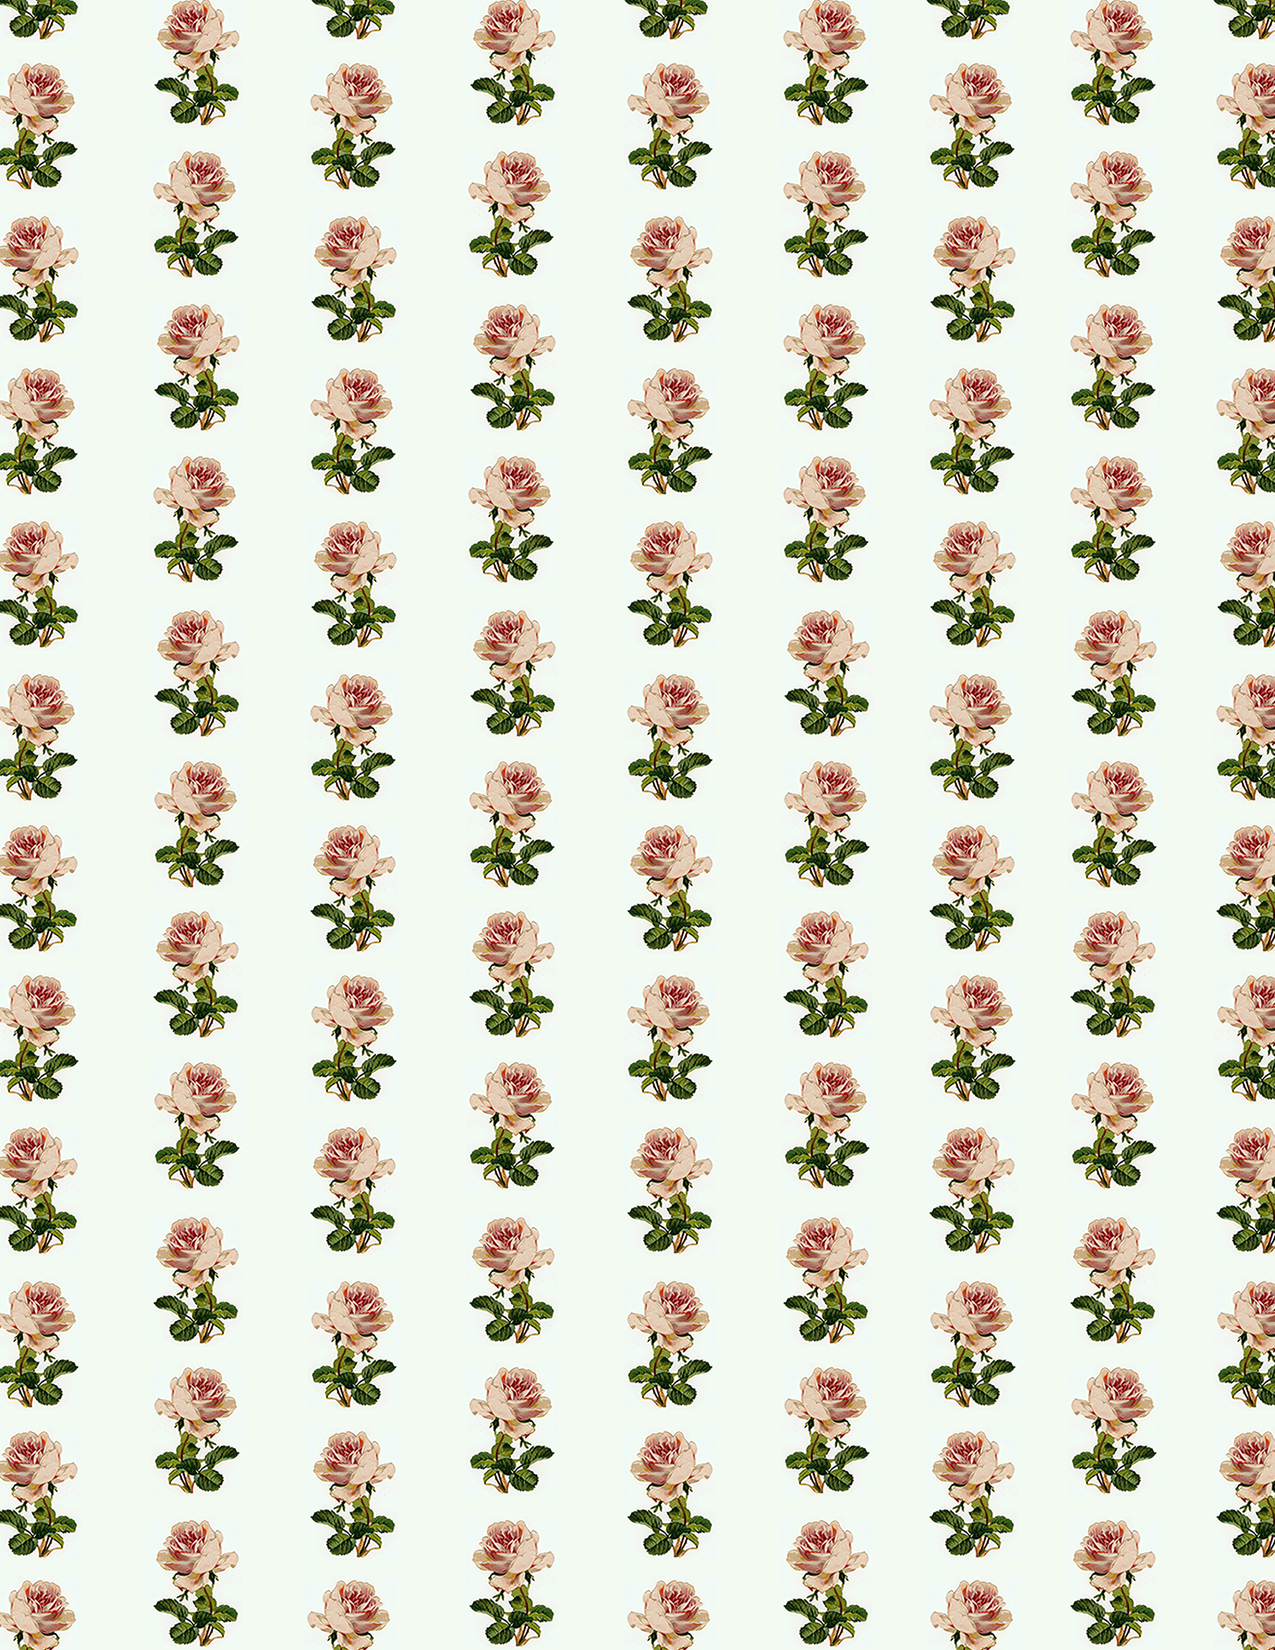 Free vintage pink rose scrapbook paper vintage holiday crafts vintage flowers scrapbook paper pink roses small mightylinksfo